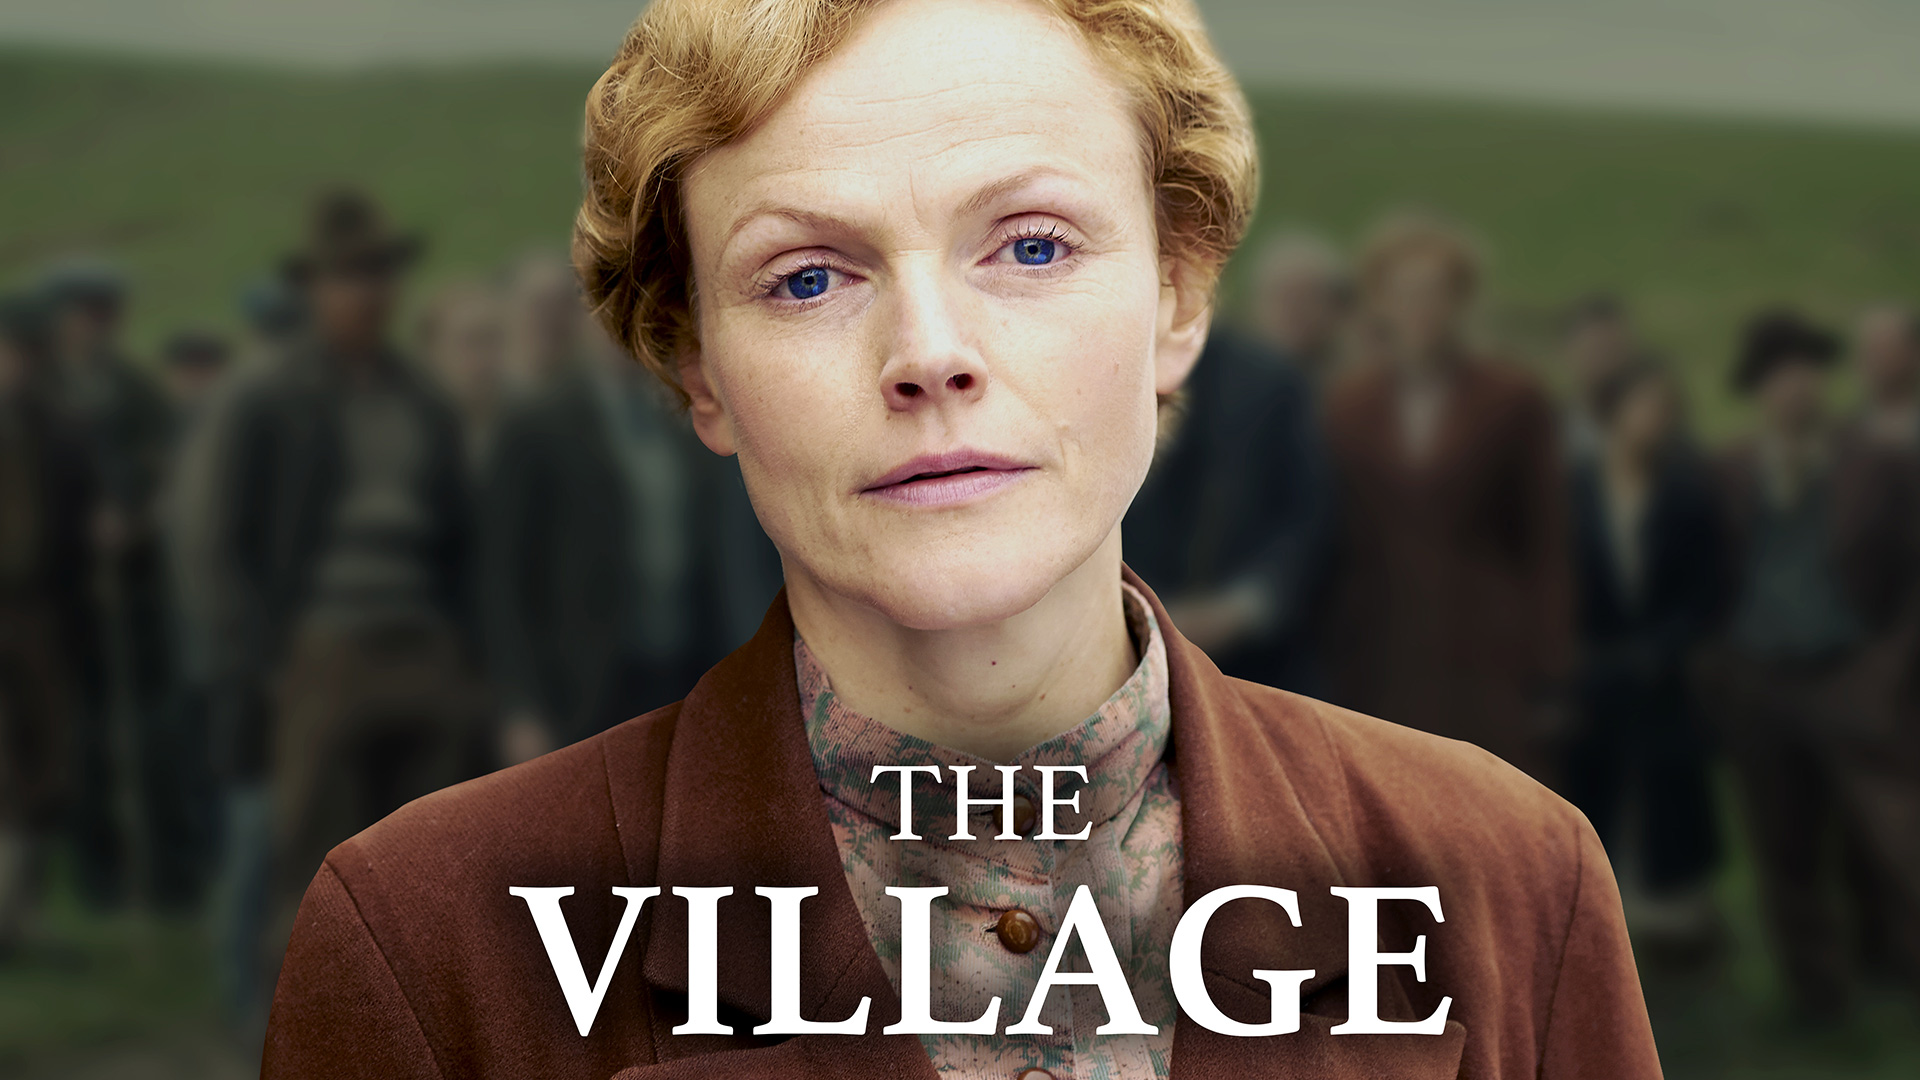 The Village, Season 1